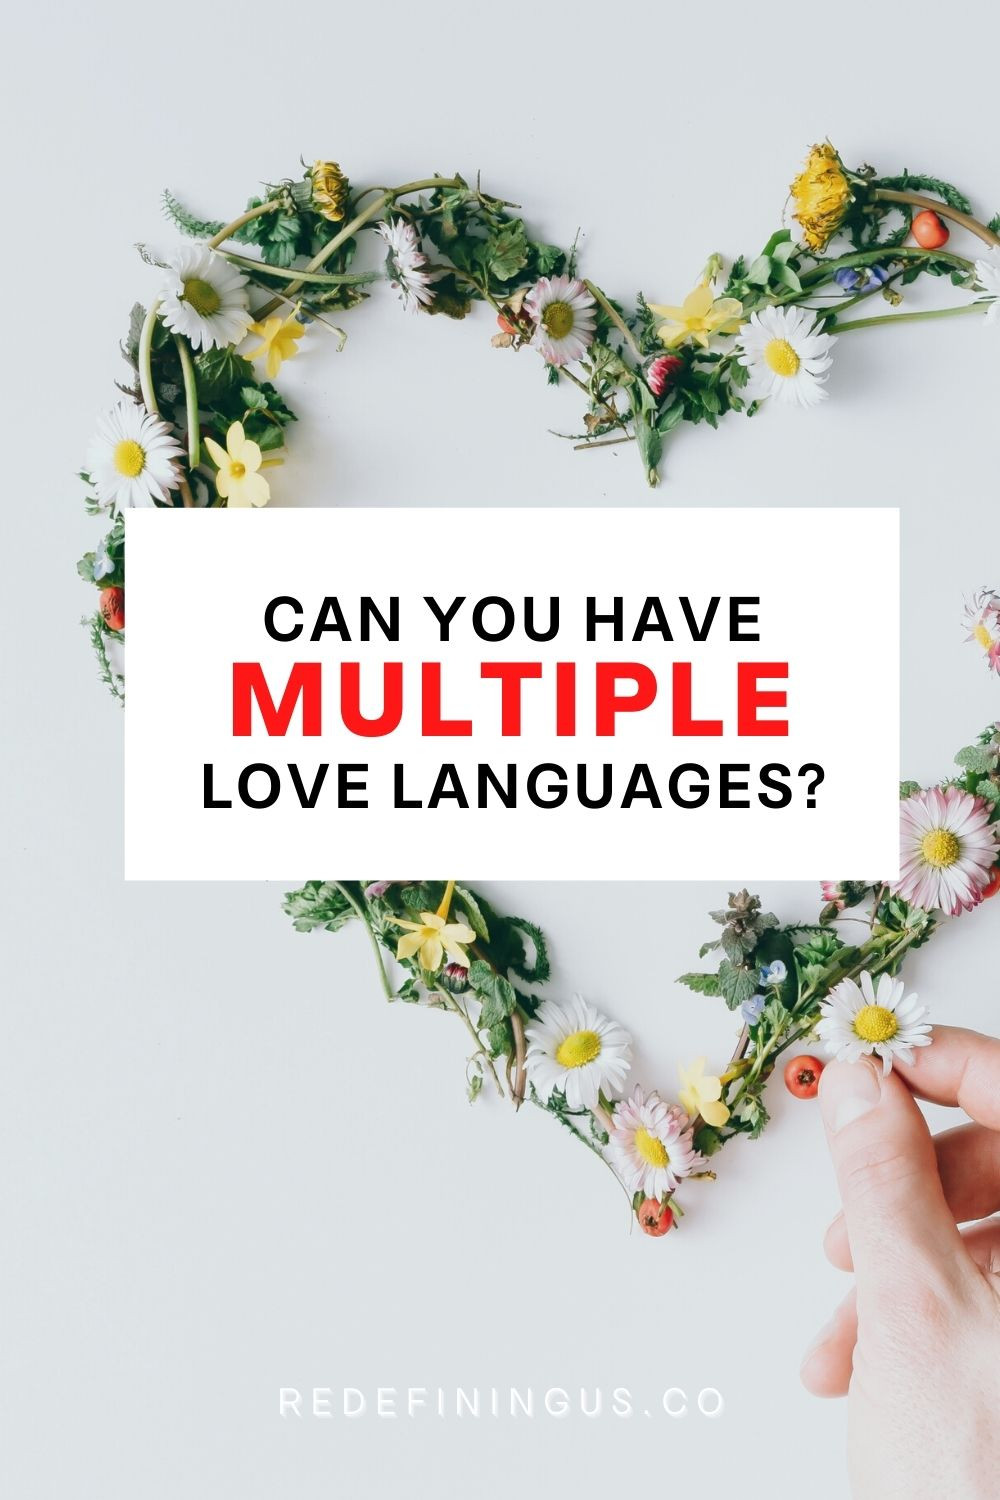 Can You Have More Than One Love Language?